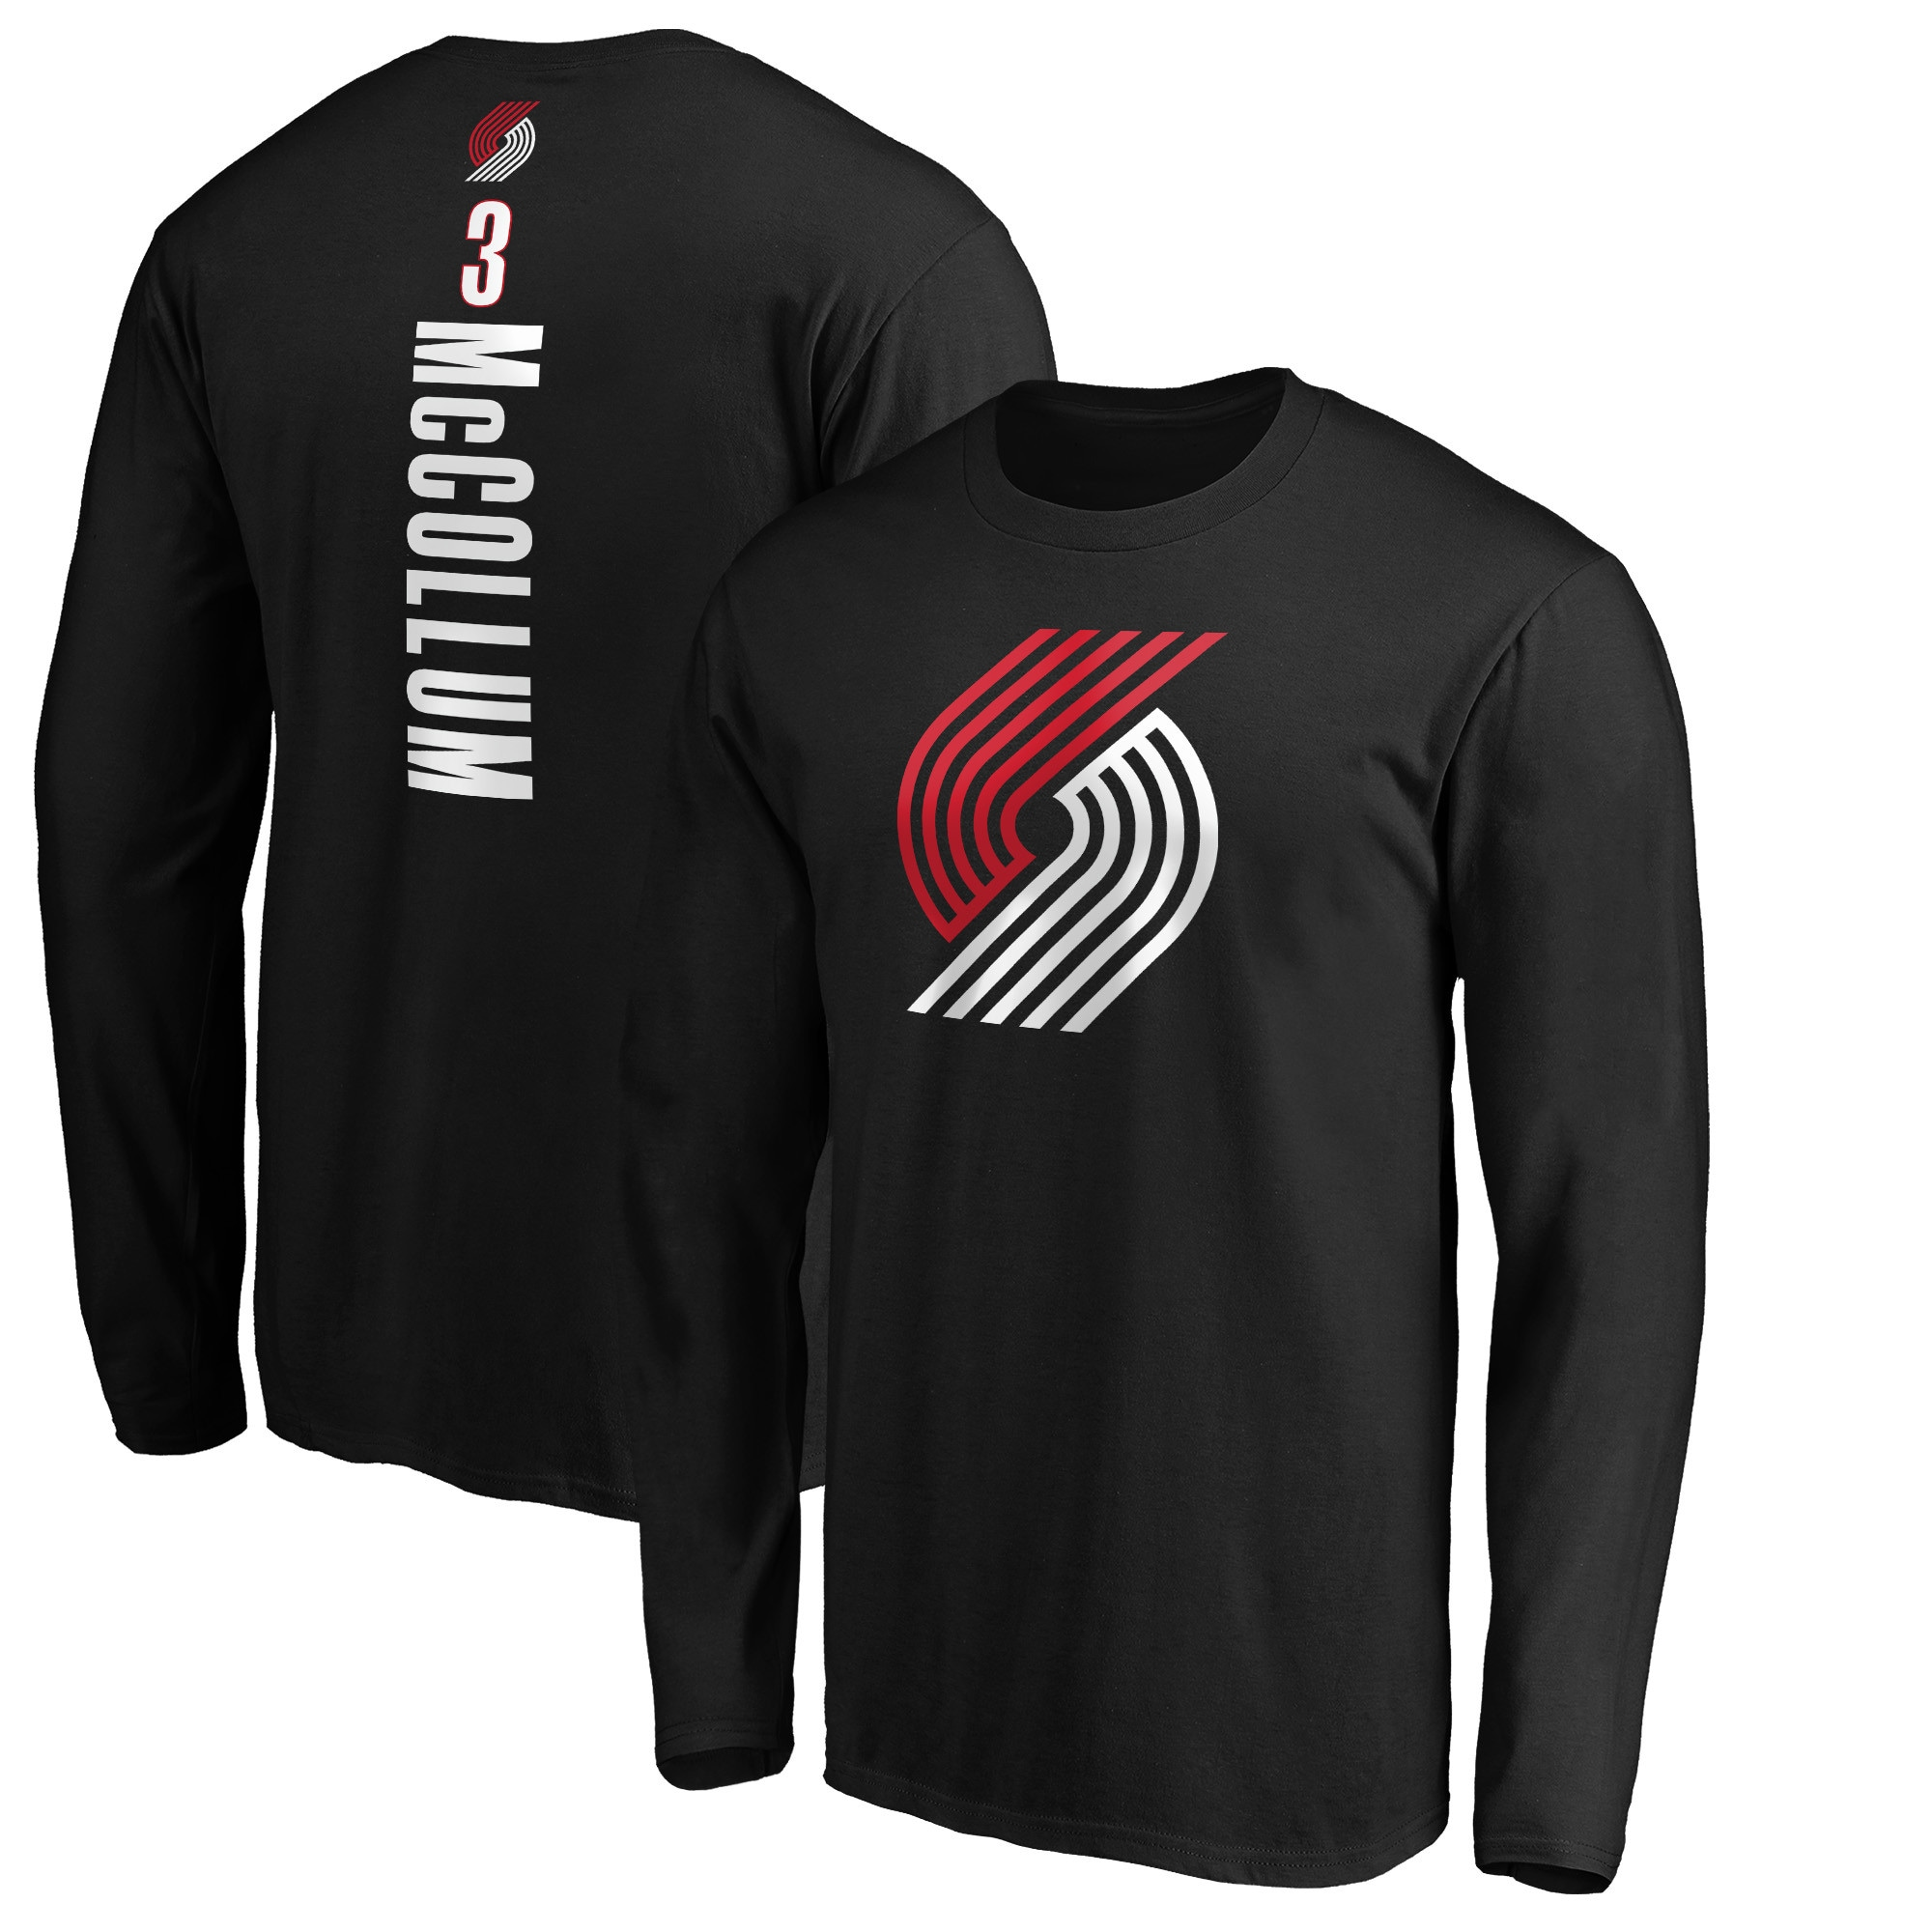 C.J. McCollum Portland Trail Blazers Fanatics Branded Team Playmaker Name & Number Long Sleeve T-Shirt - Black